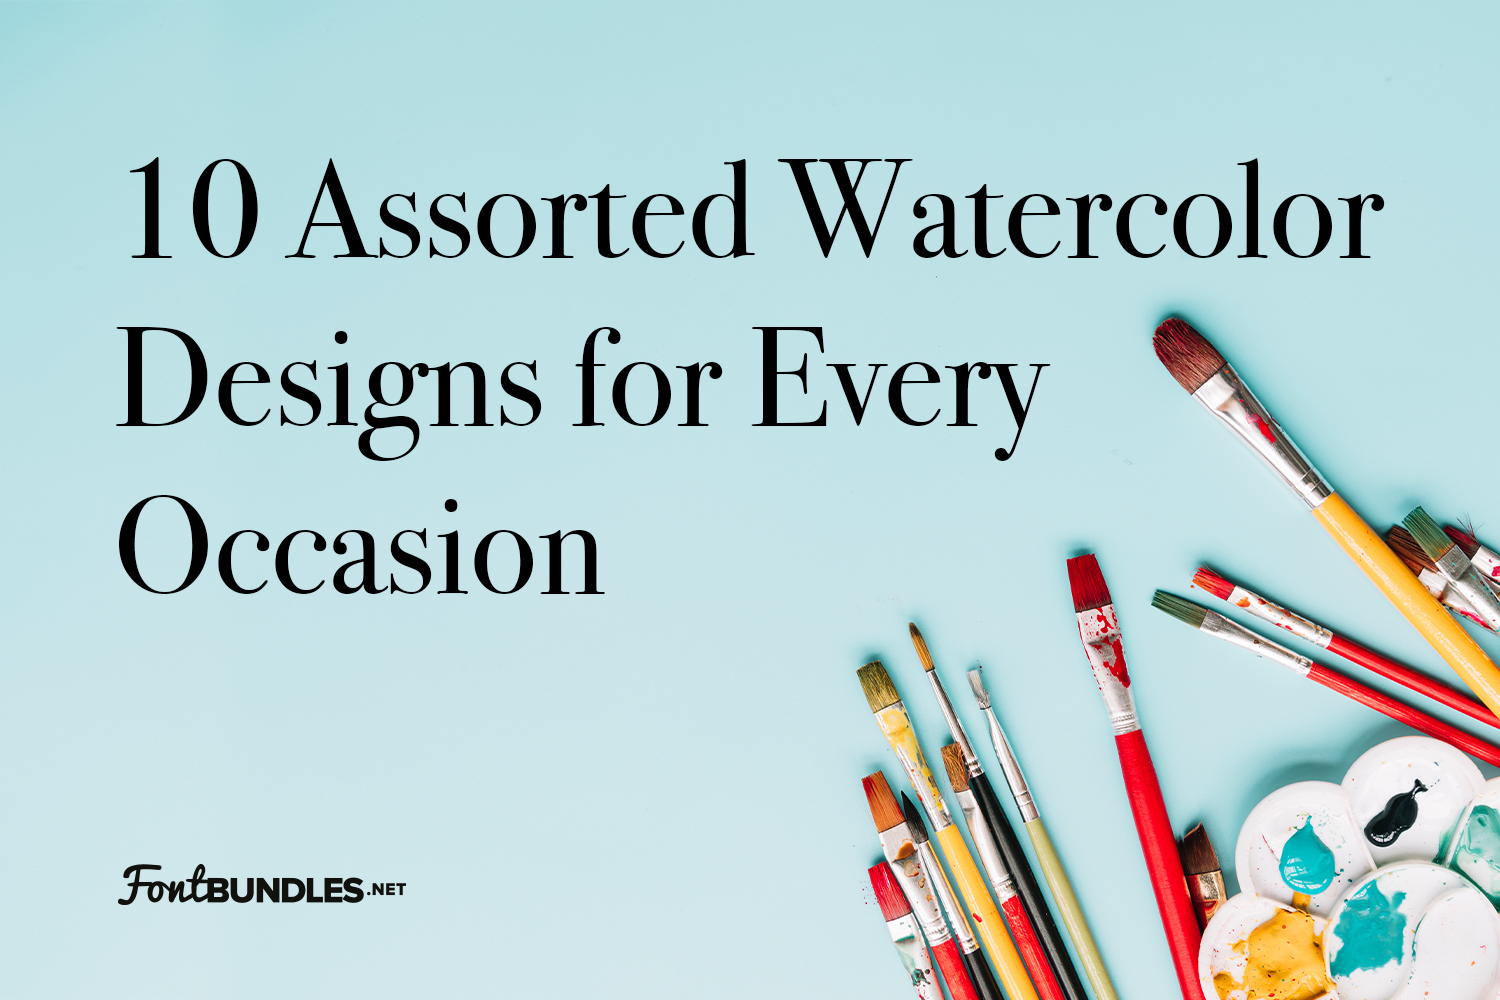 10 Assorted Watercolor Designs for Every Occasion